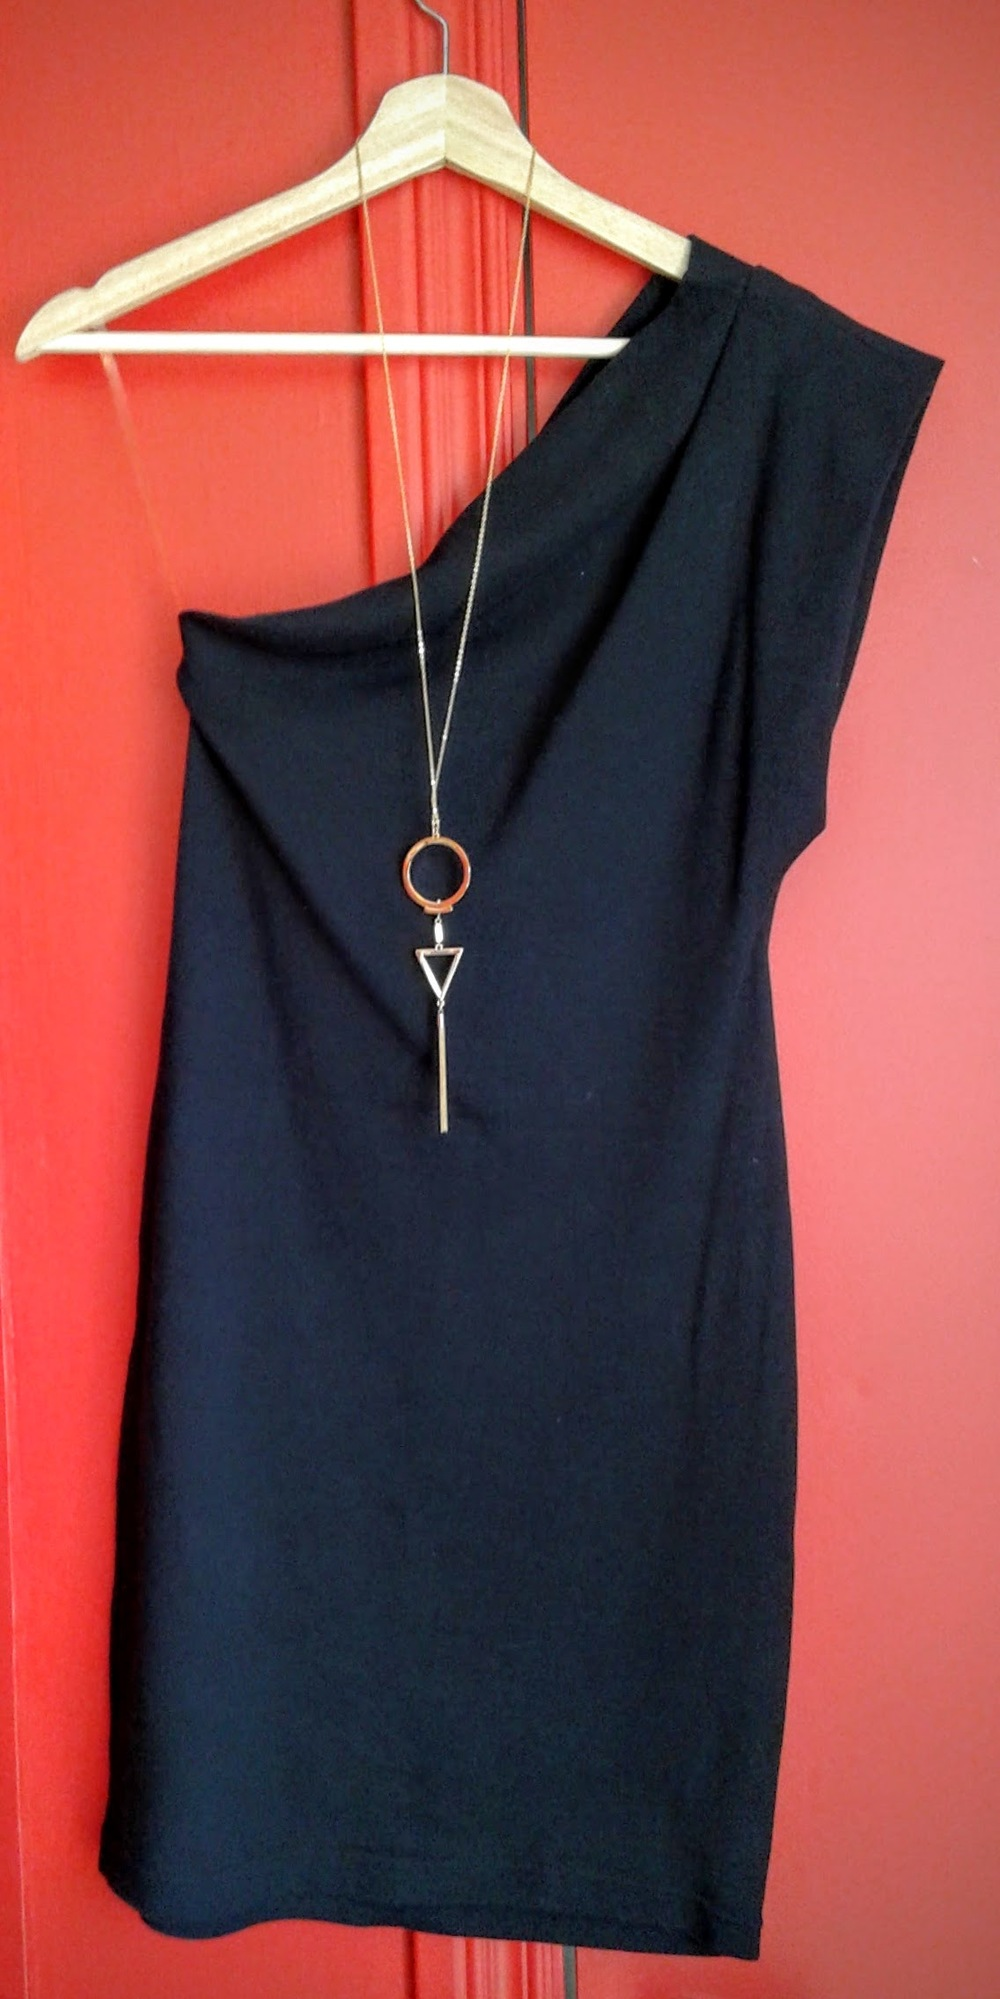 American Apparel dress; Size M, $24